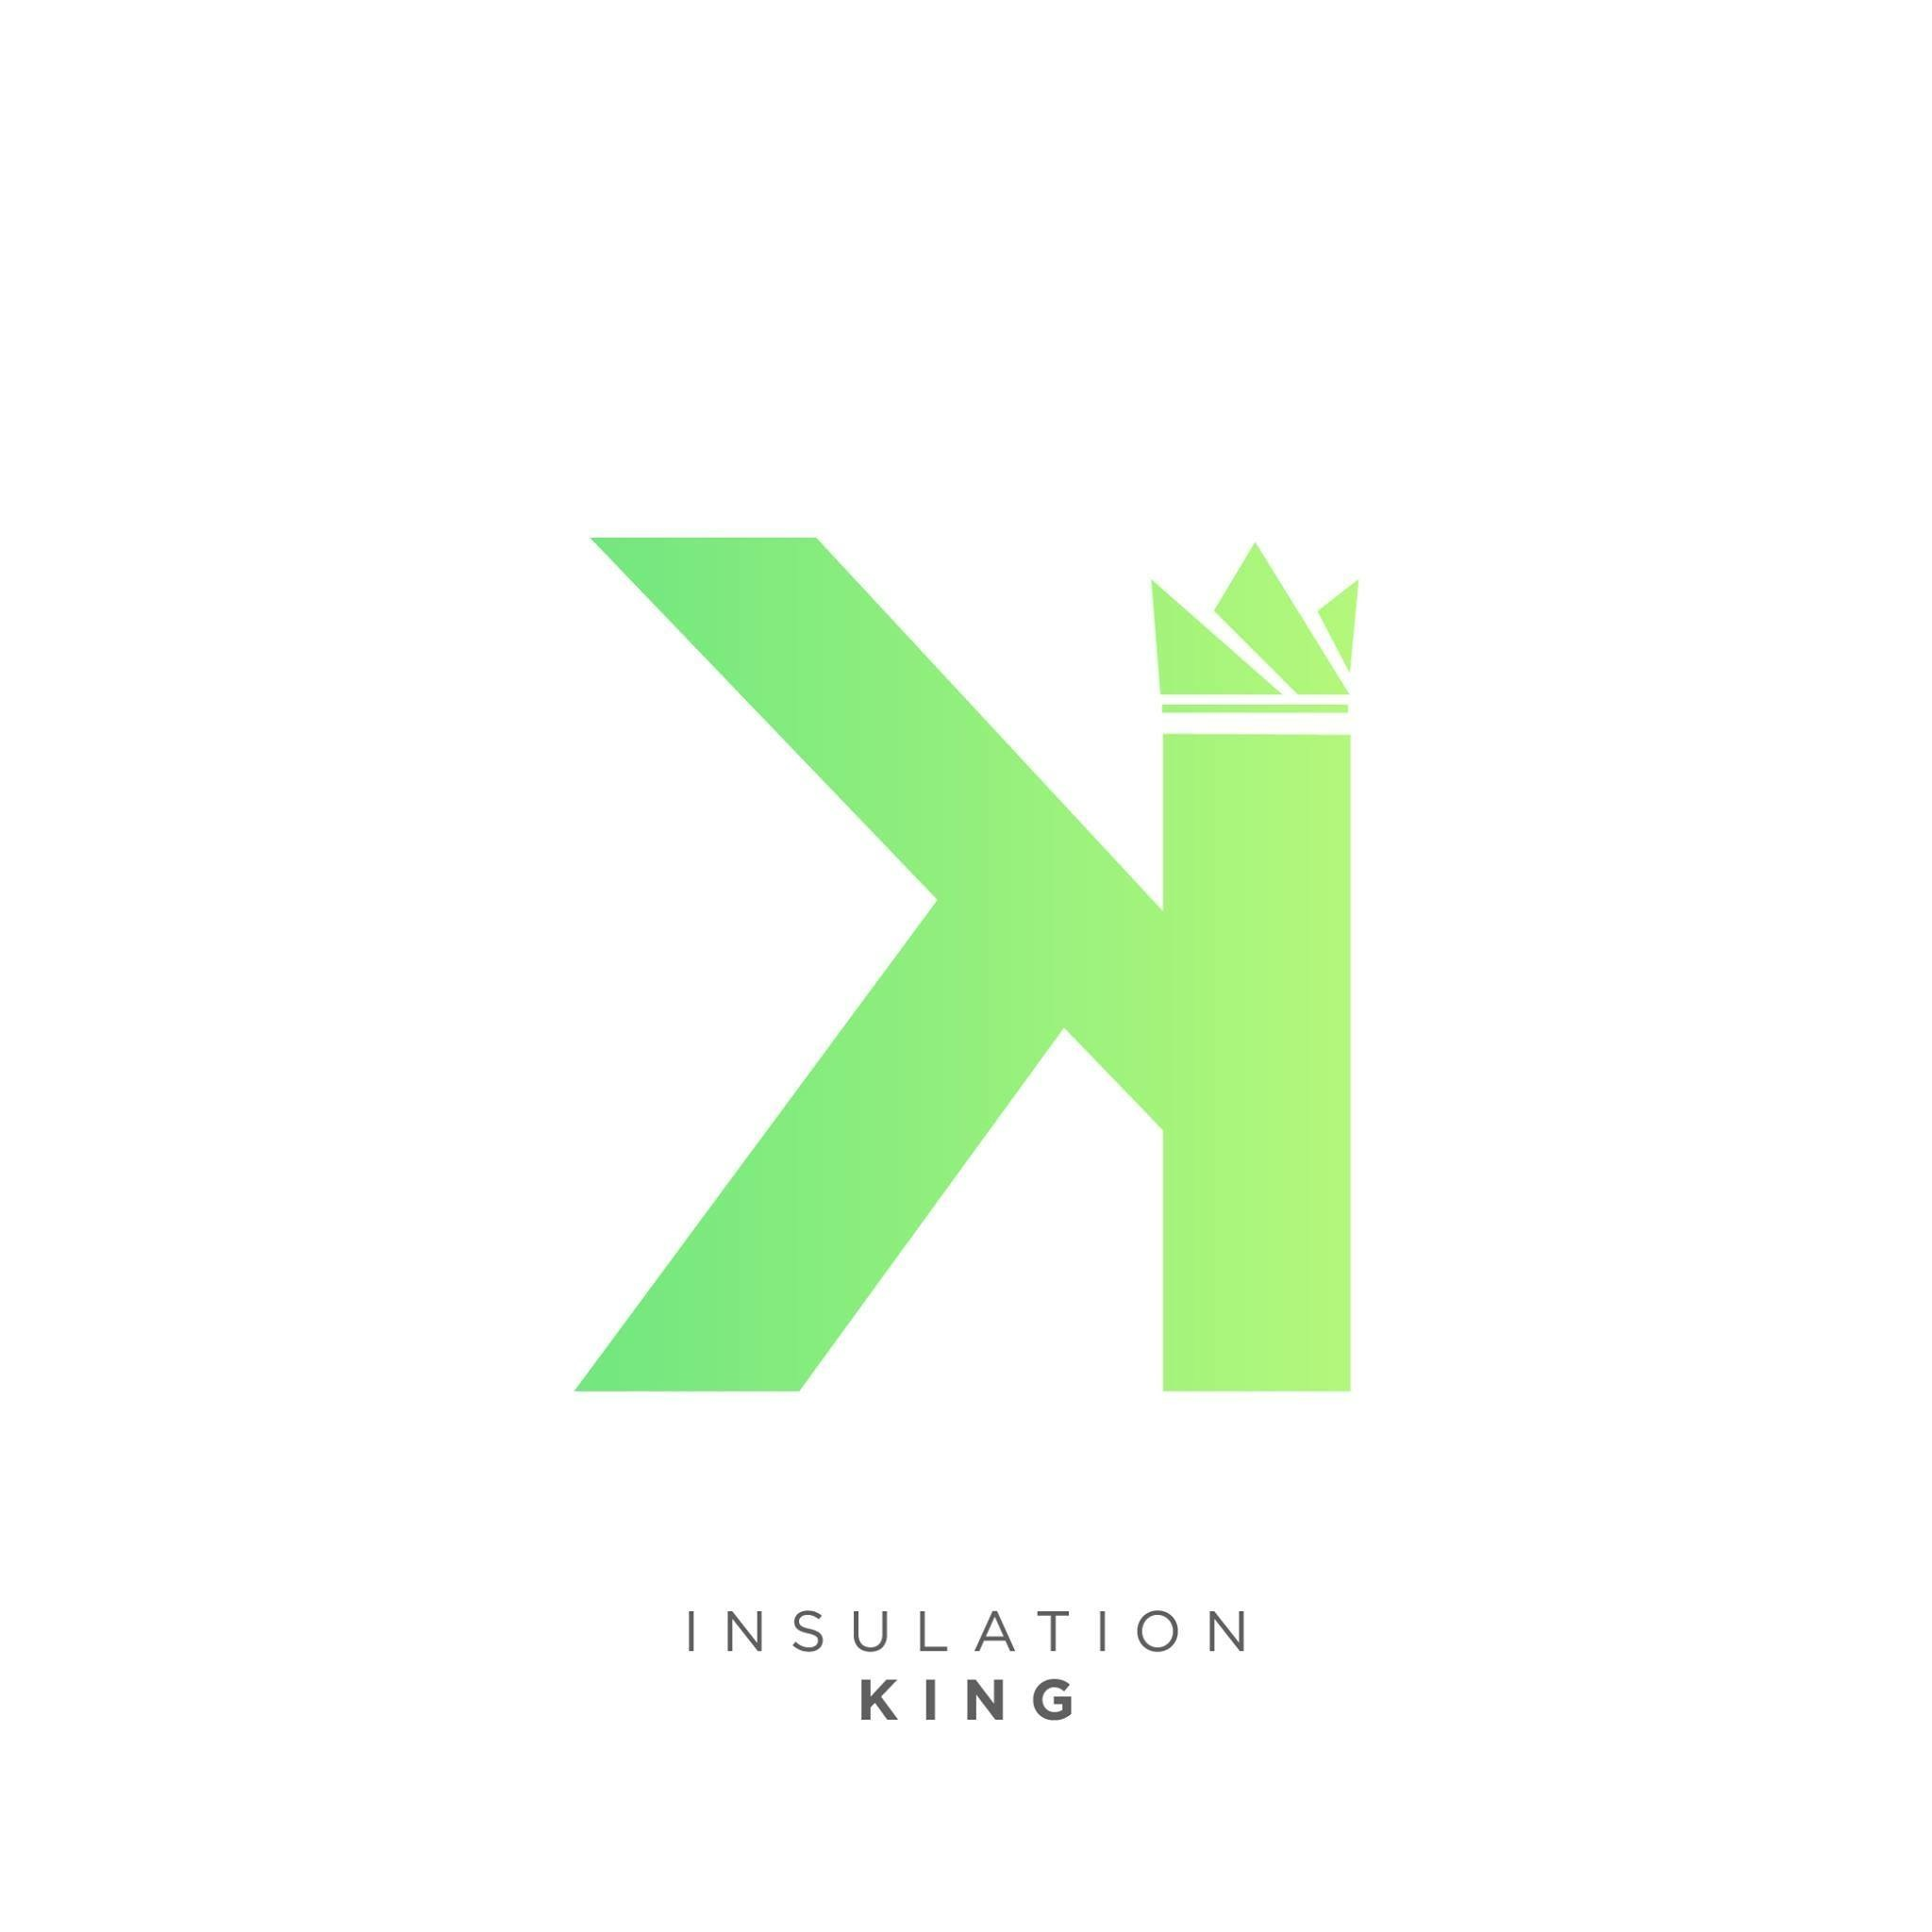 Insulation King